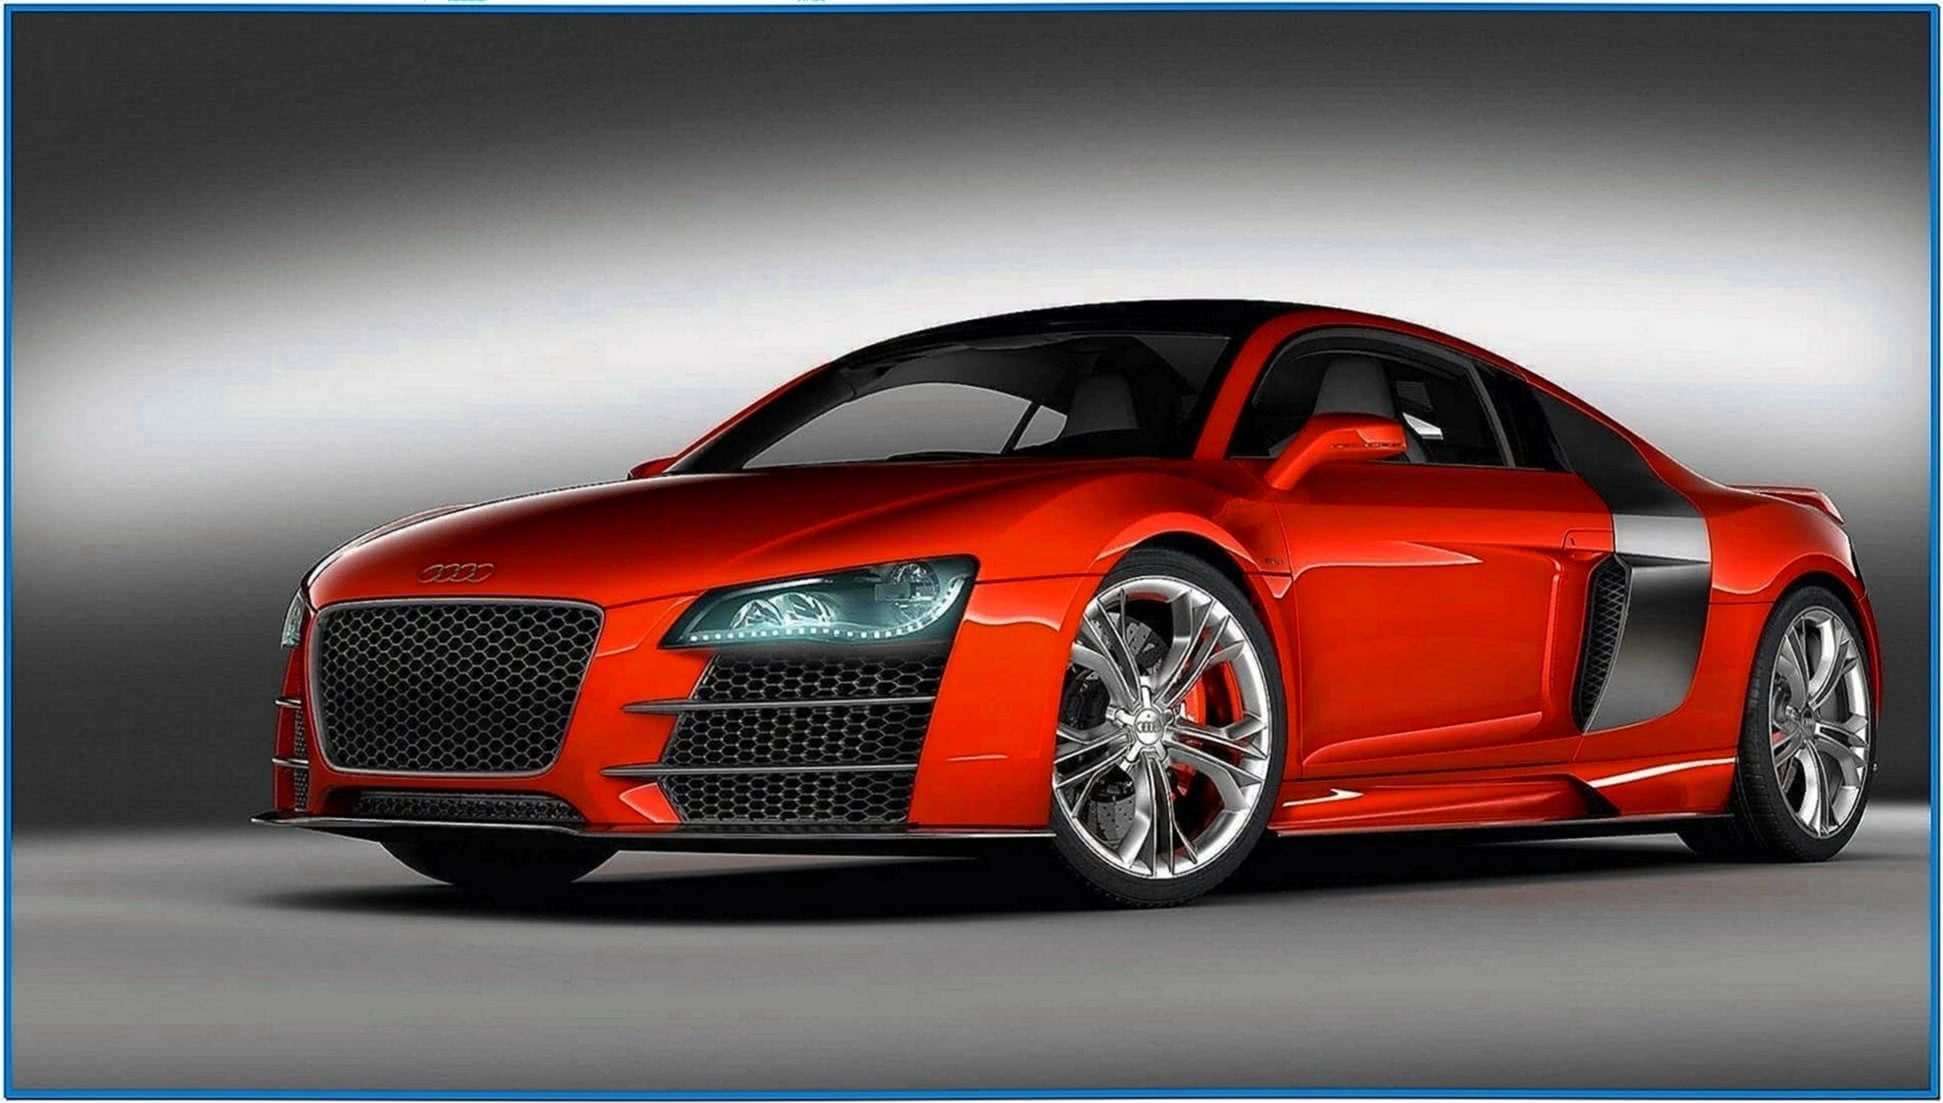 Audi R8 Screensaver Windows 7